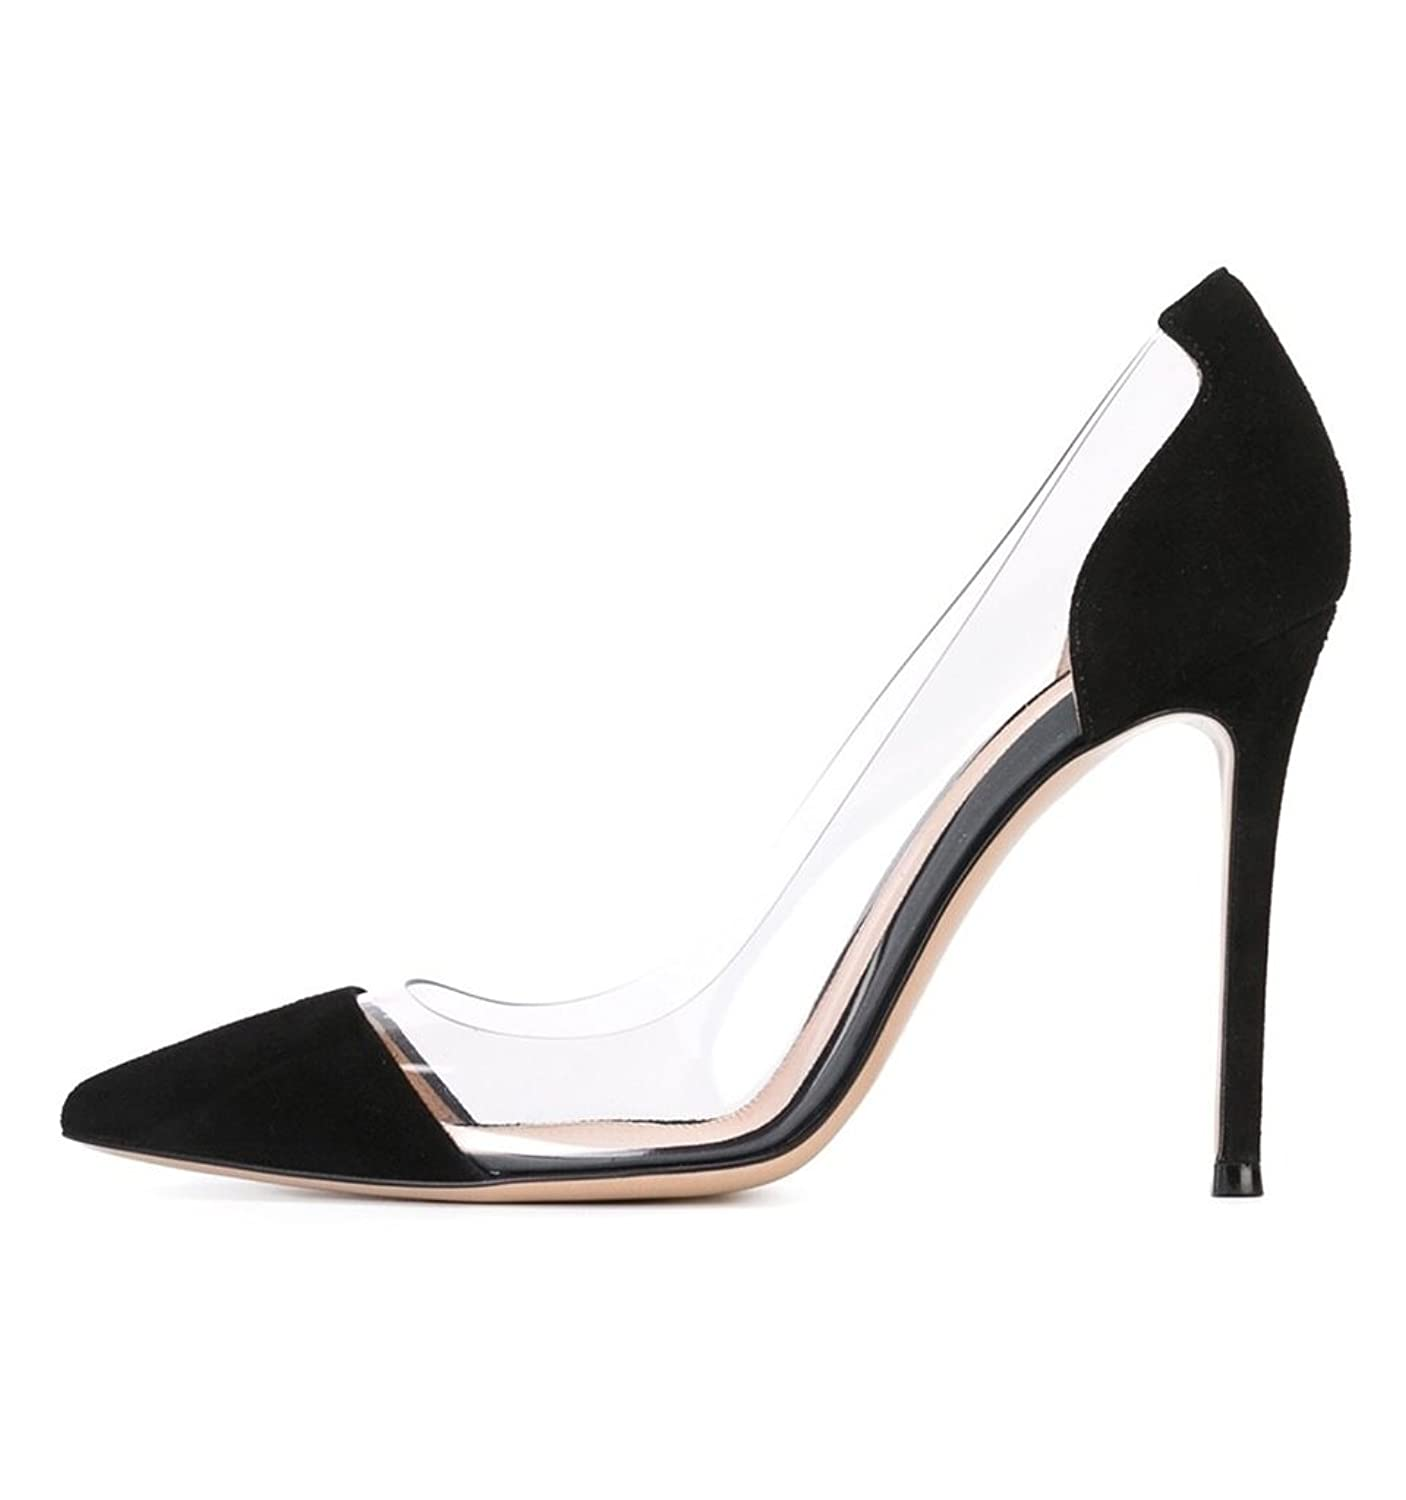 9578c779a2c1 ViViKiKi Women s 100mm Pointed Cap Toe High Heel Pumps Slip On PVC Side  Party Dress Shoes